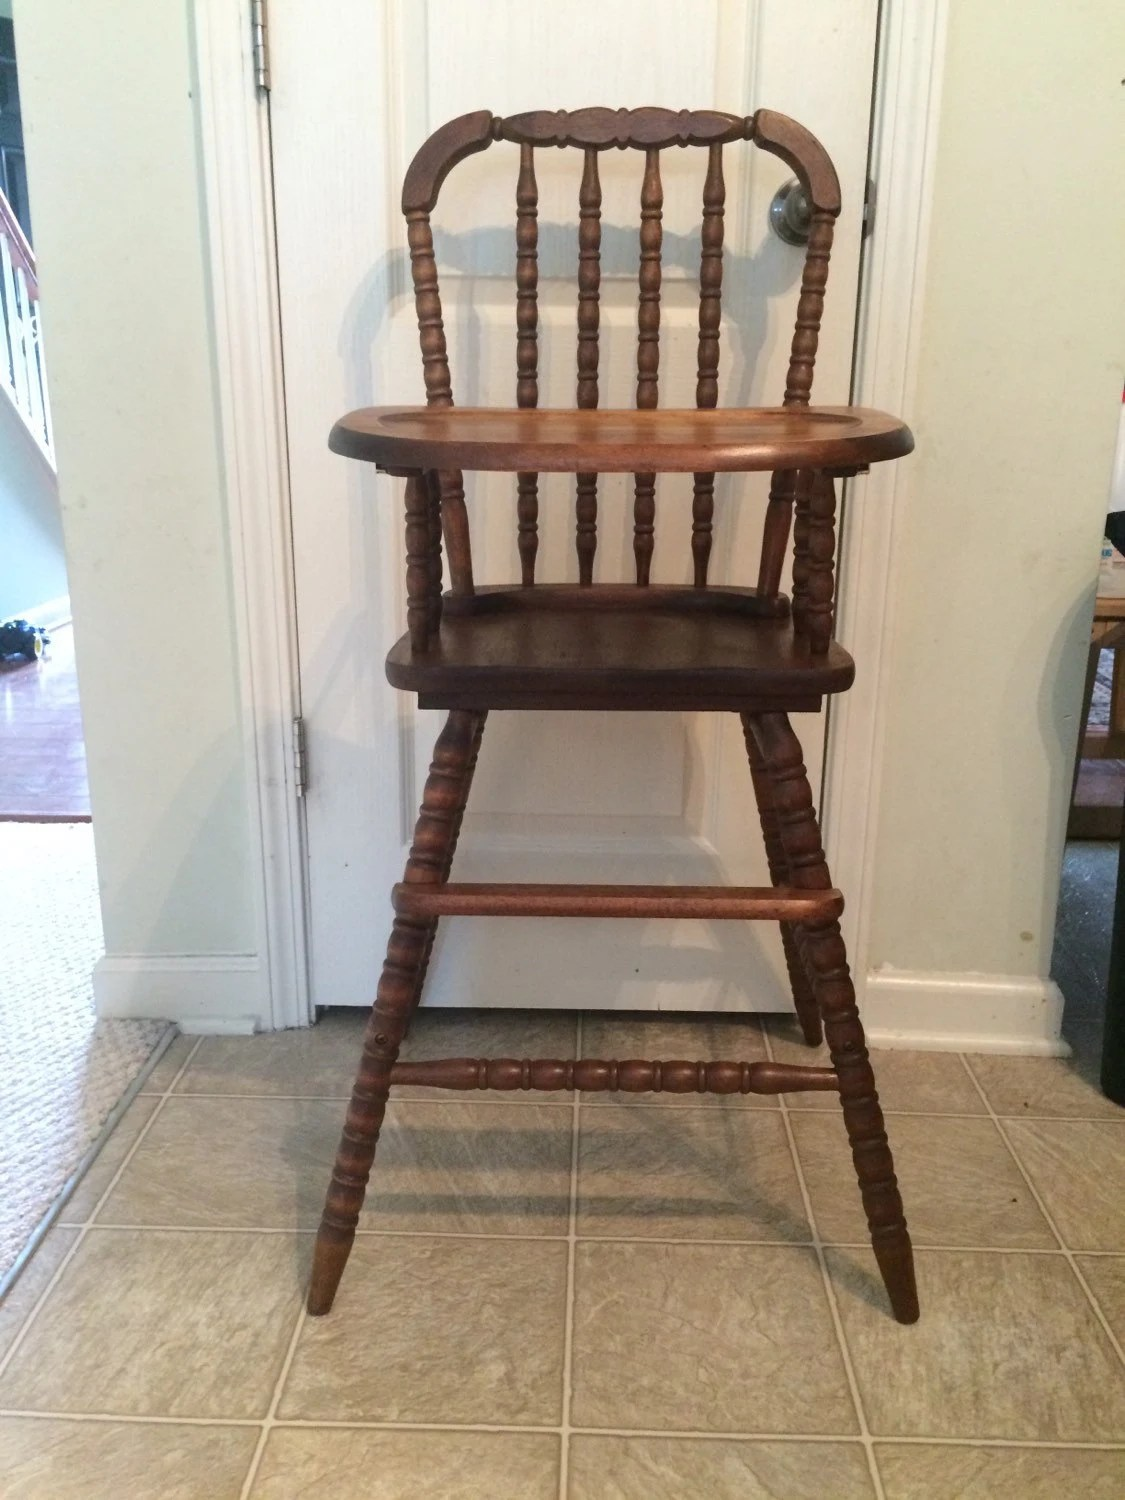 Wooden High Chair Vintage Wooden High Chair Jenny Lind Antique High Chair